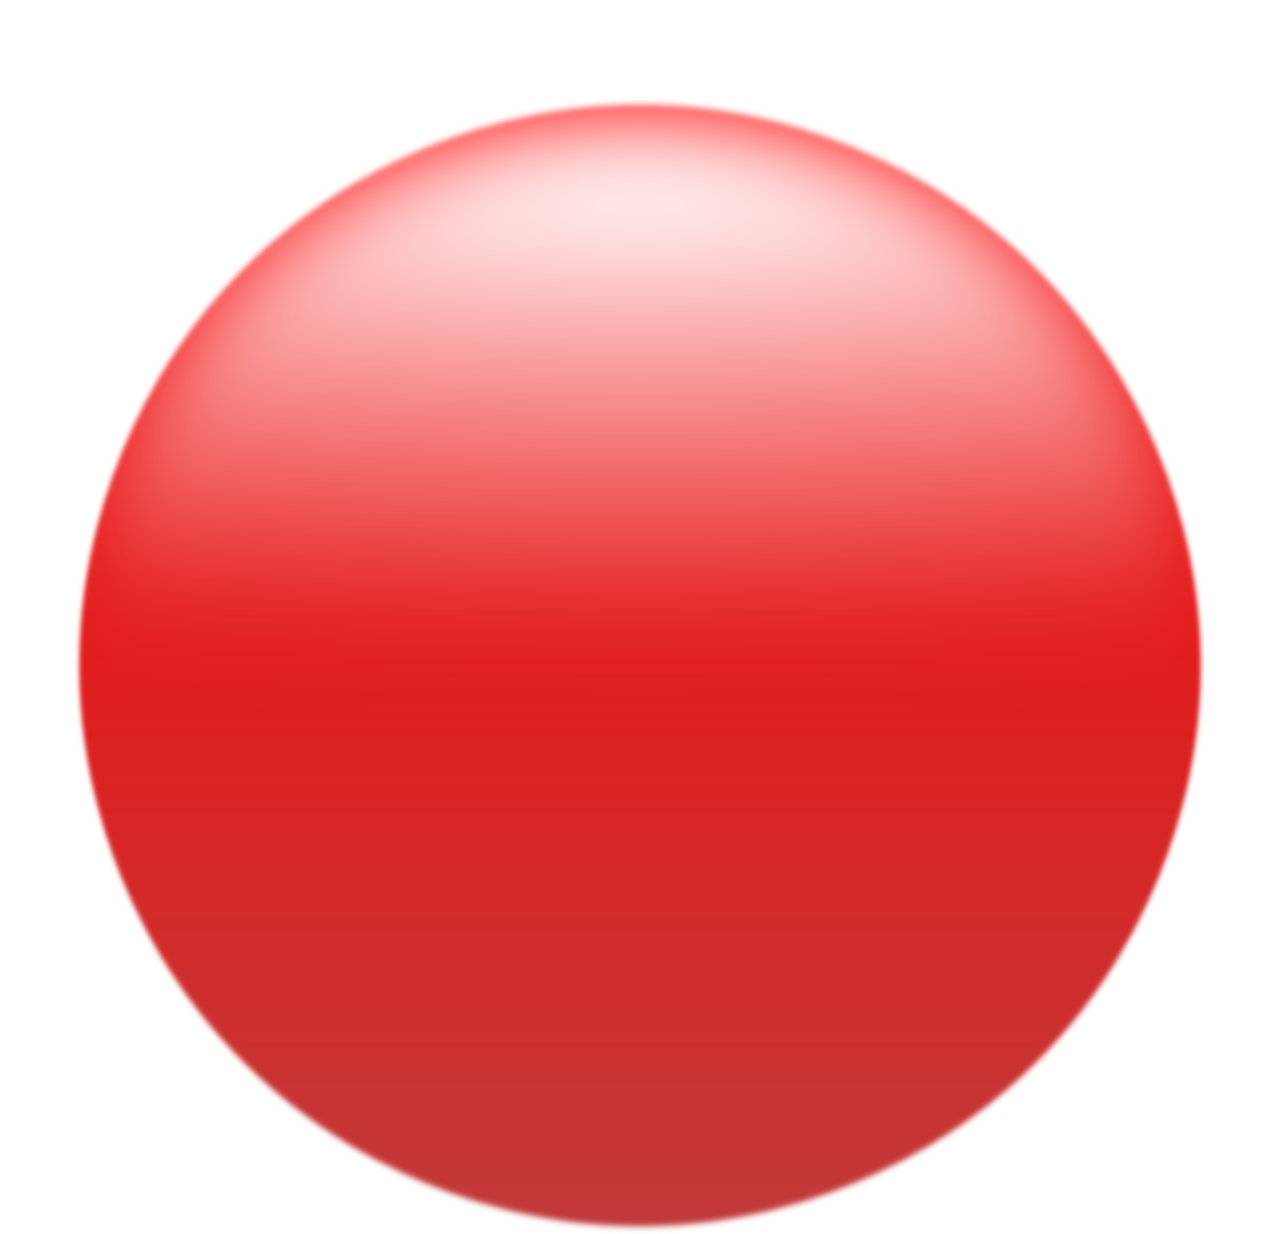 The red rubber ball theory of church growth | Flatlander Faith